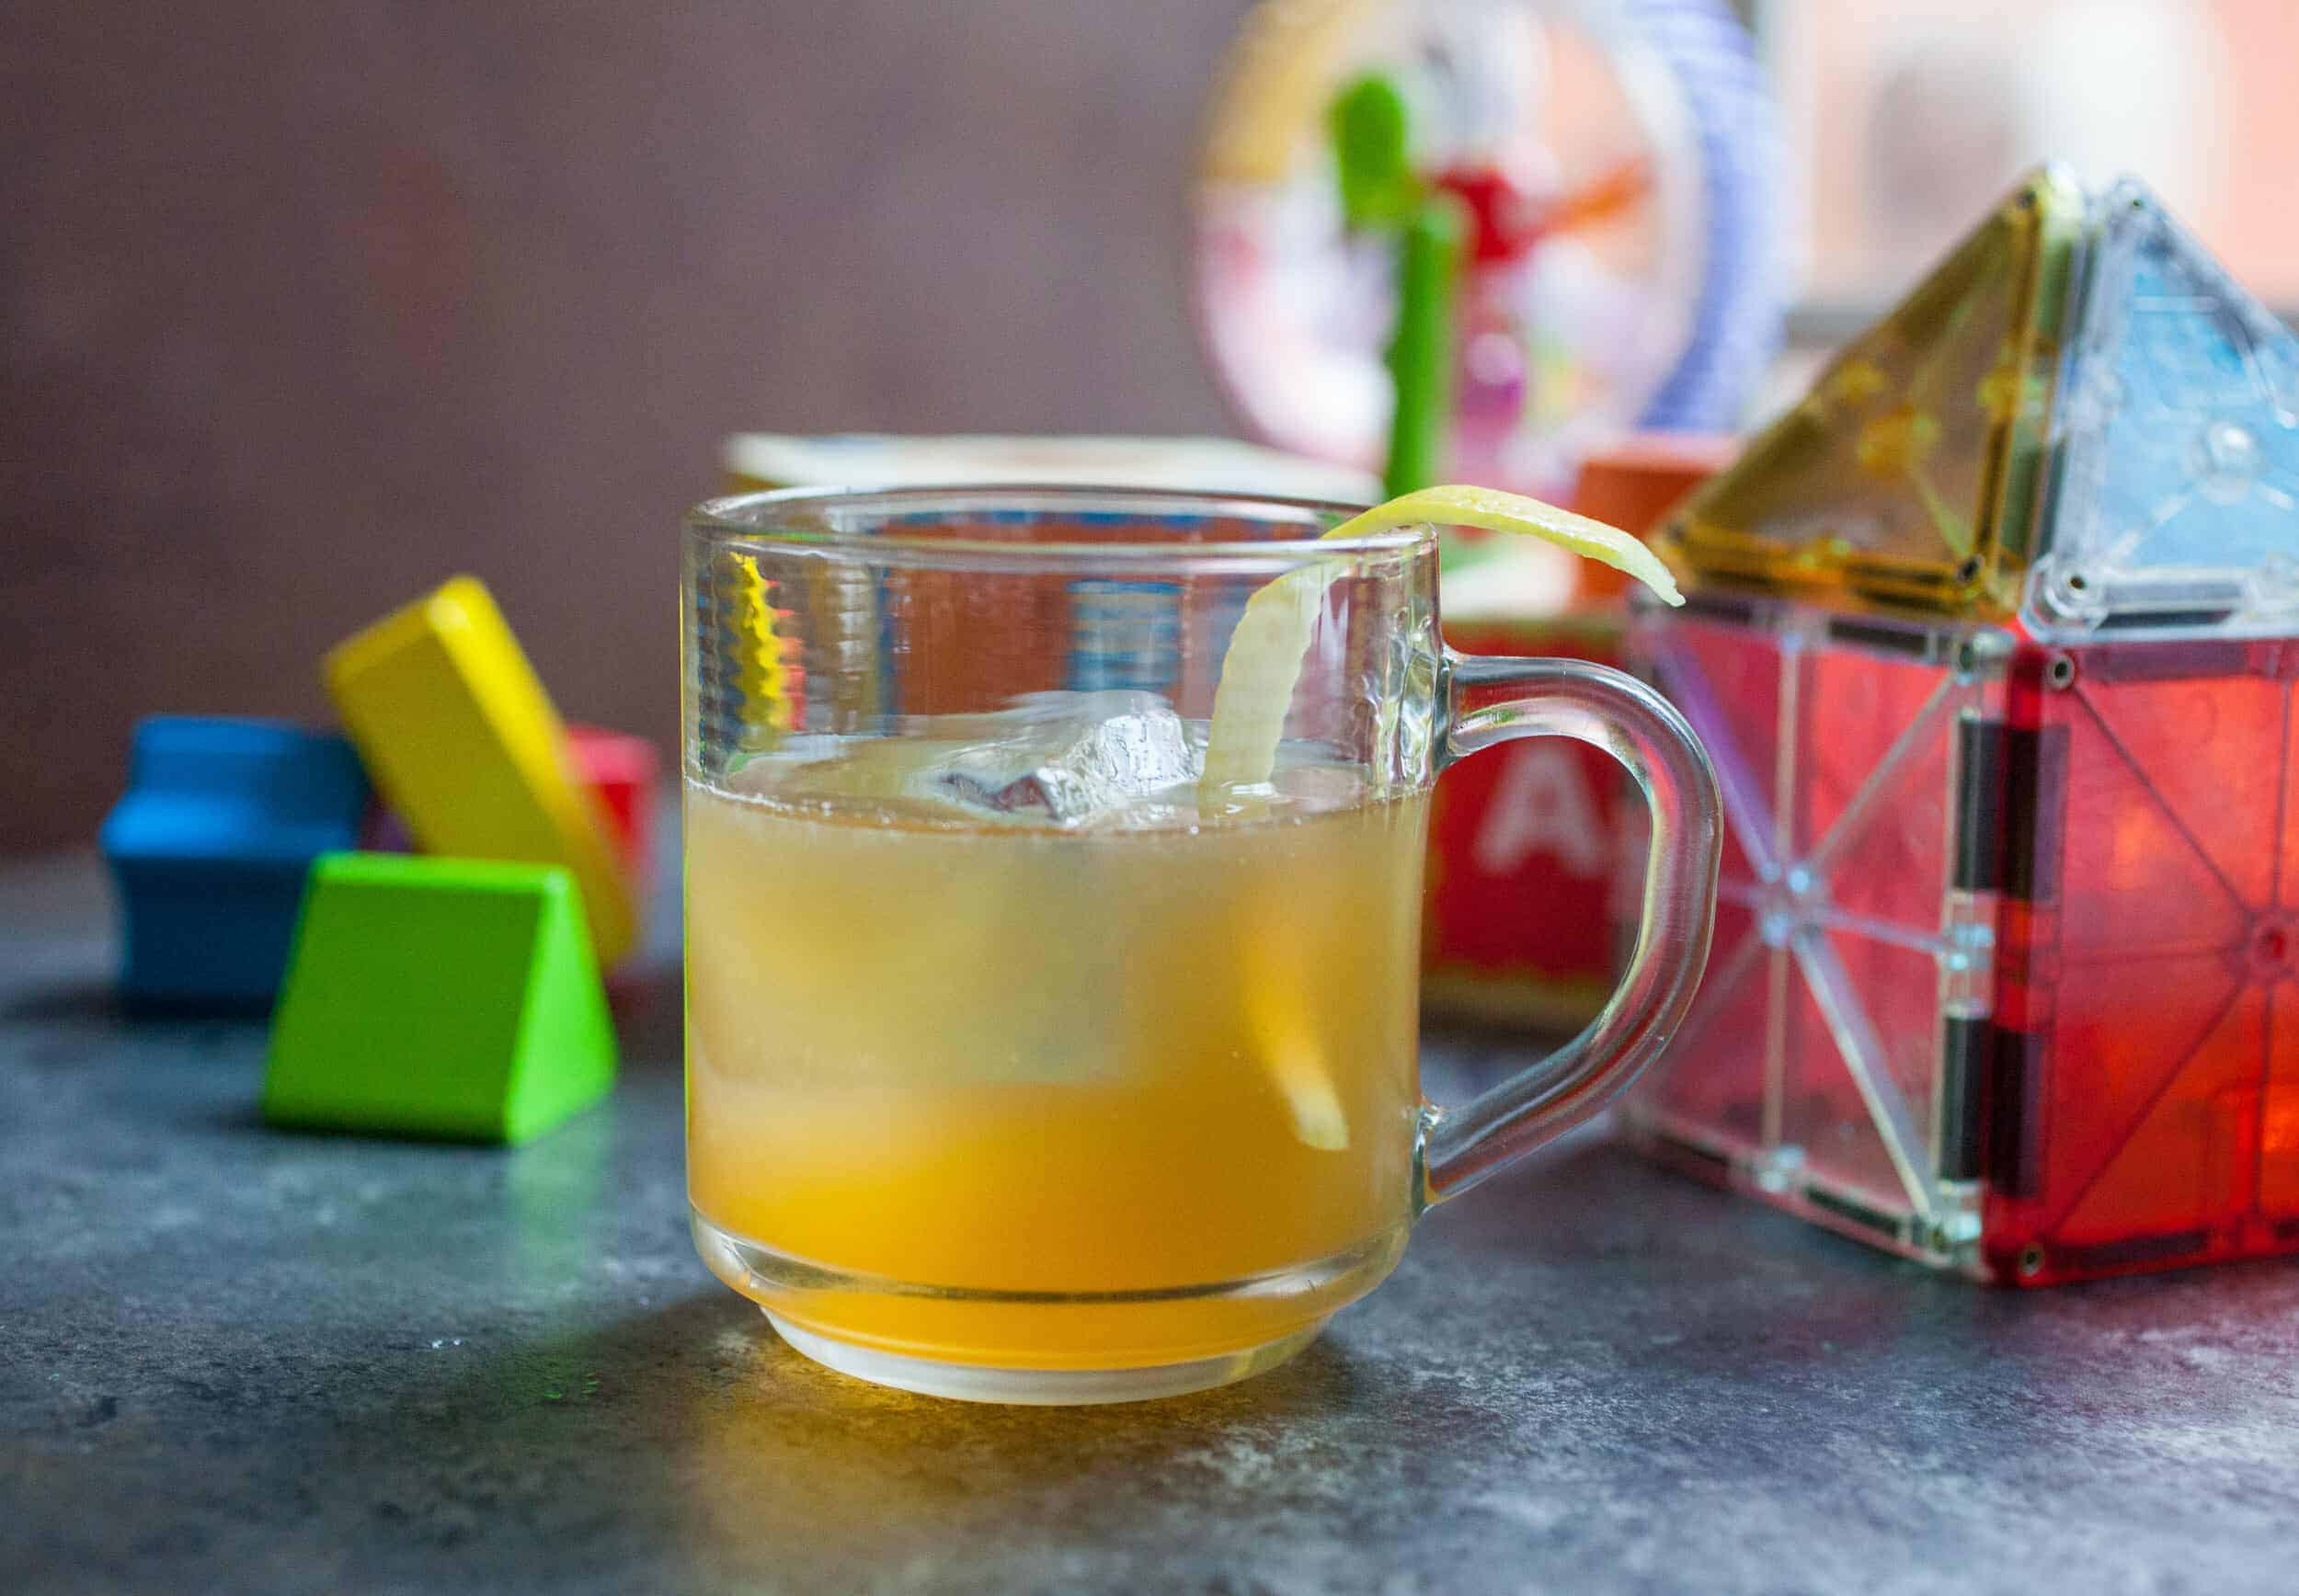 Bourbon honey cocktail: Almost like a hot toddy, but served over ice. Easy to mix up even after a long day and perfect for sipping while cleaning up the day's mess. | macheesmo.com